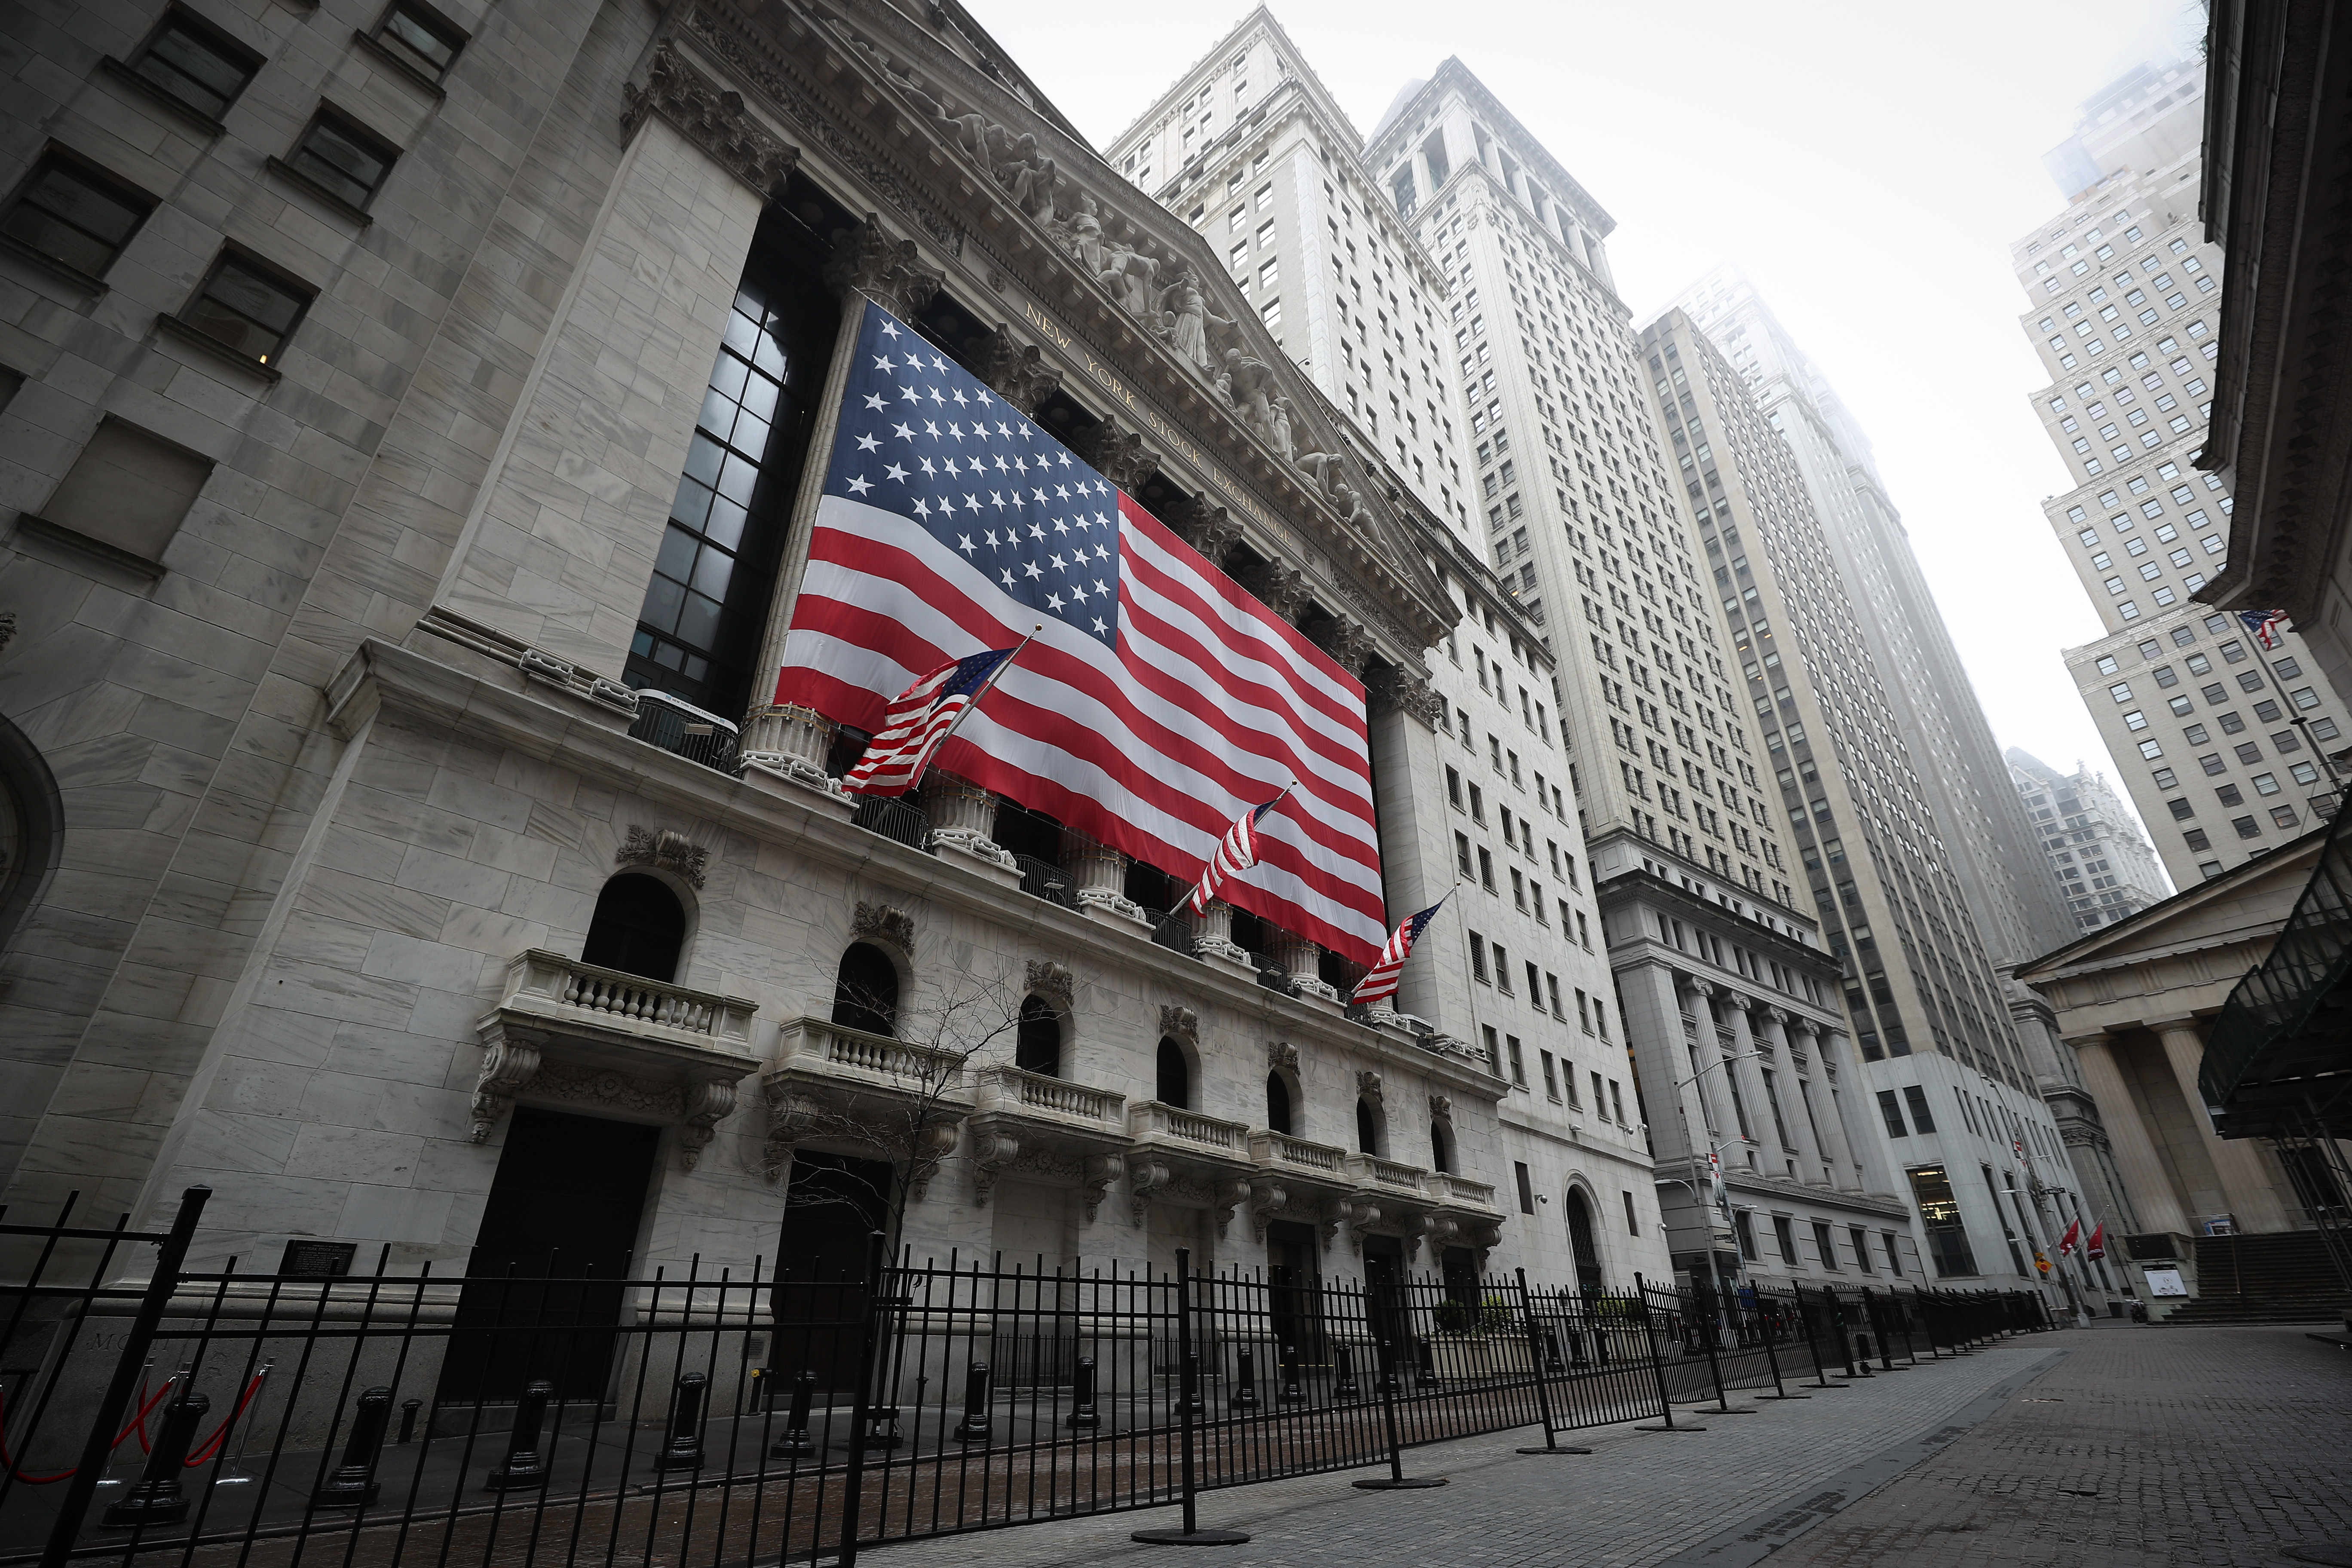 NEW YORK, USA - MARCH 29: New York Stock Exchange building is seen at the Financial District in New York City, United States on March 29, 2020. New York is ranked as one of the largest International Financial Centres (